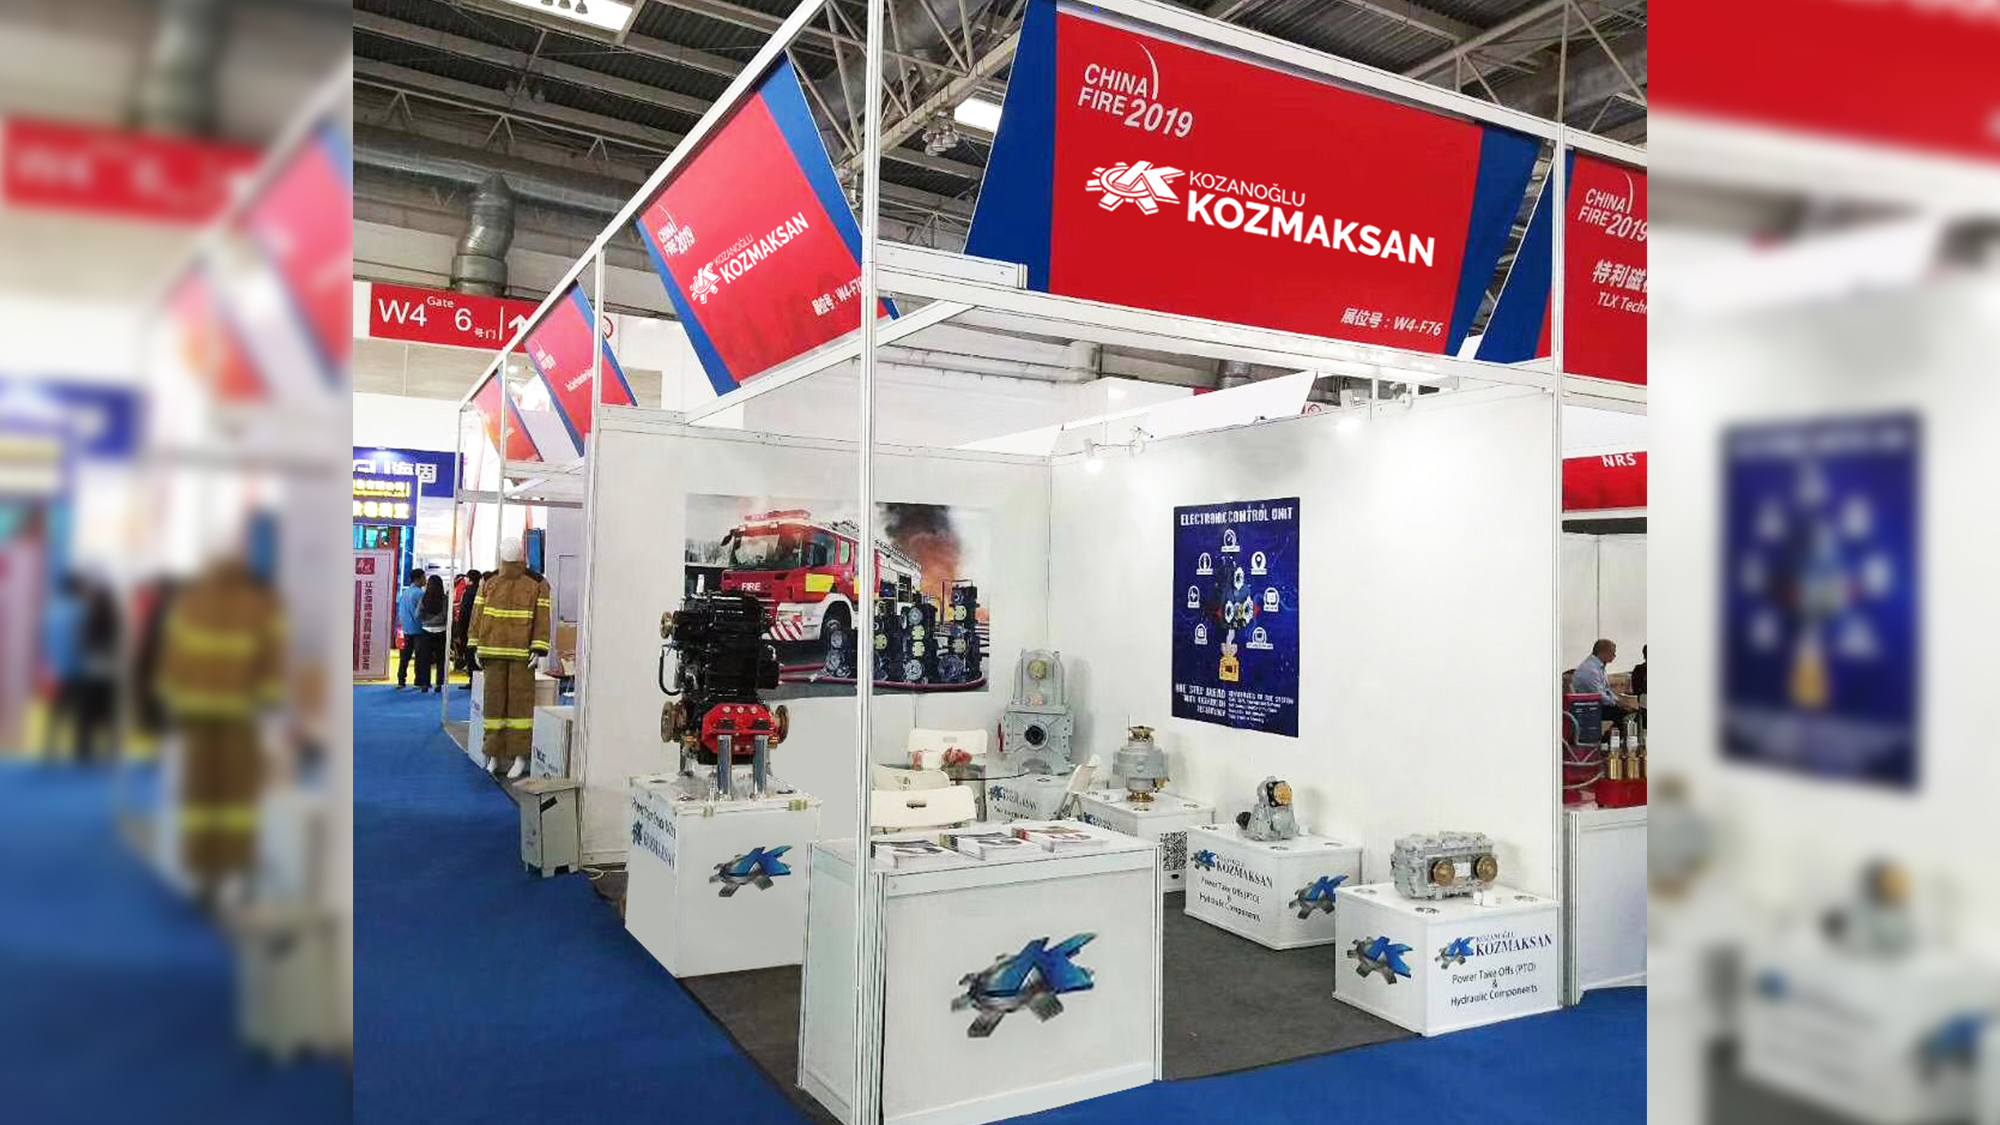 PTO KOZMAKSAN Has Participated To China Fire 2019!